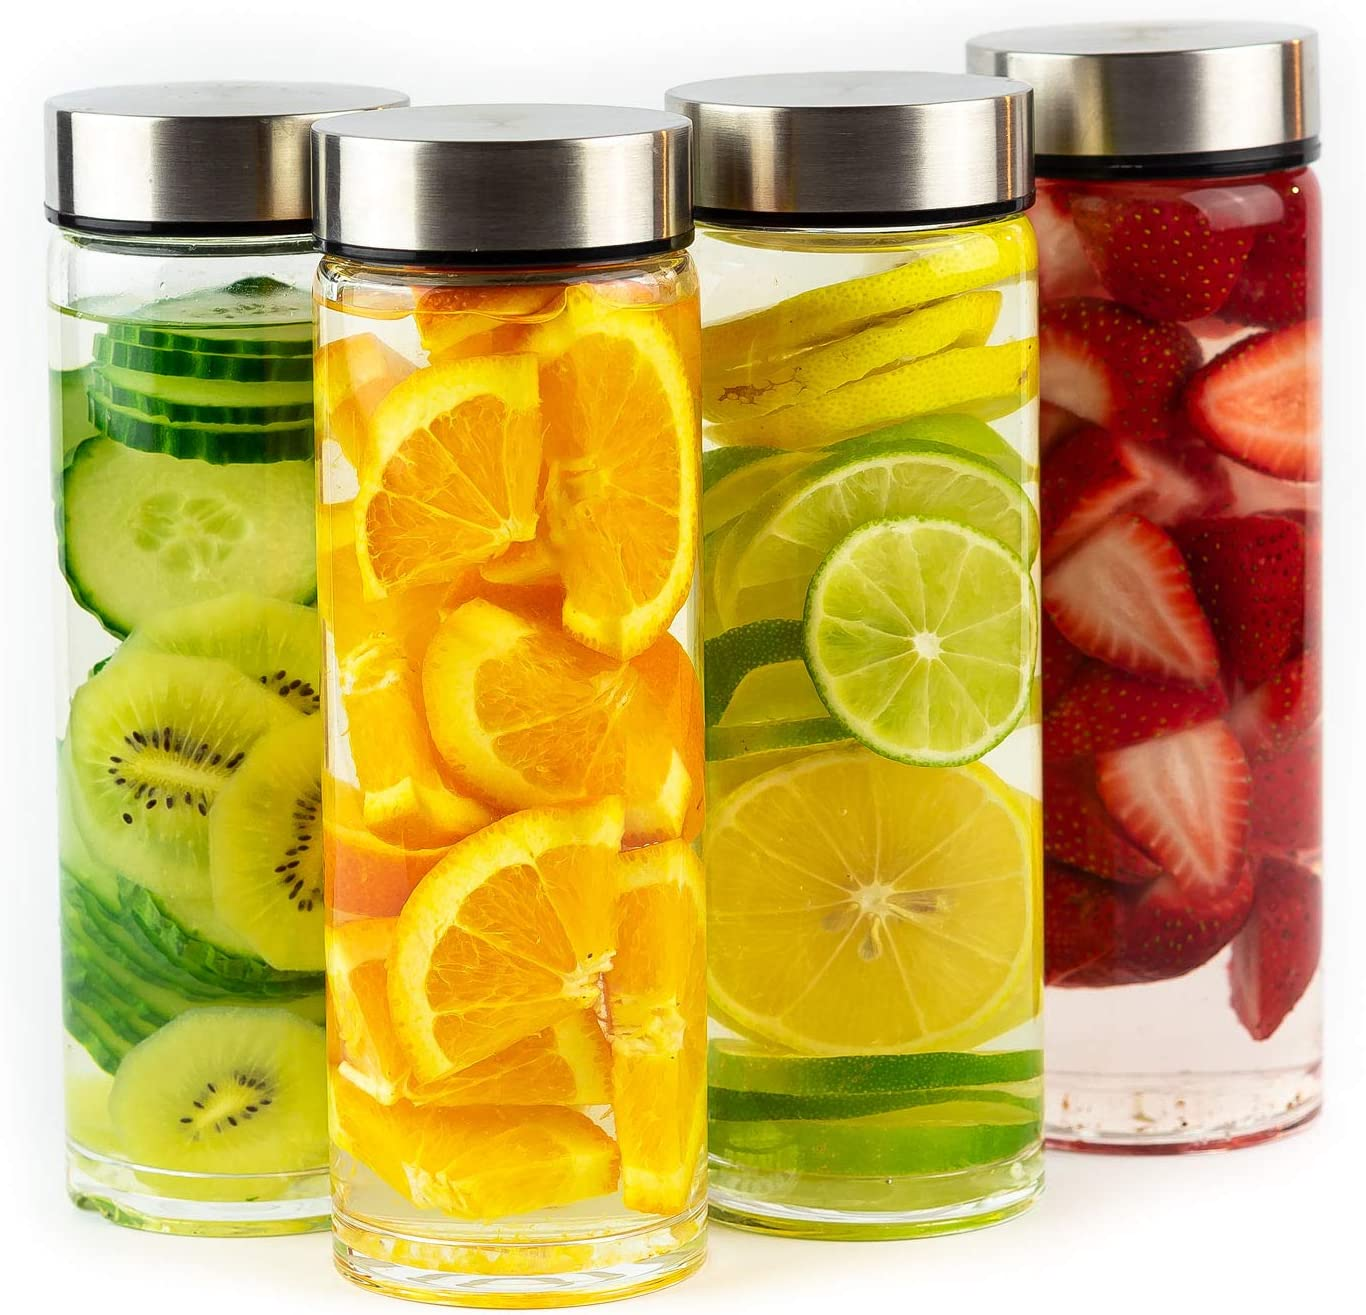 Juice Bottles - 4 Pack Wide Mouth Glass Bottles with Lids - for Juicing, Smoothies, Infused Water, Beverage Storage - 16oz, BPA Free, Stainless Steel Lids, Leakproof, Reusable, Borosilicate